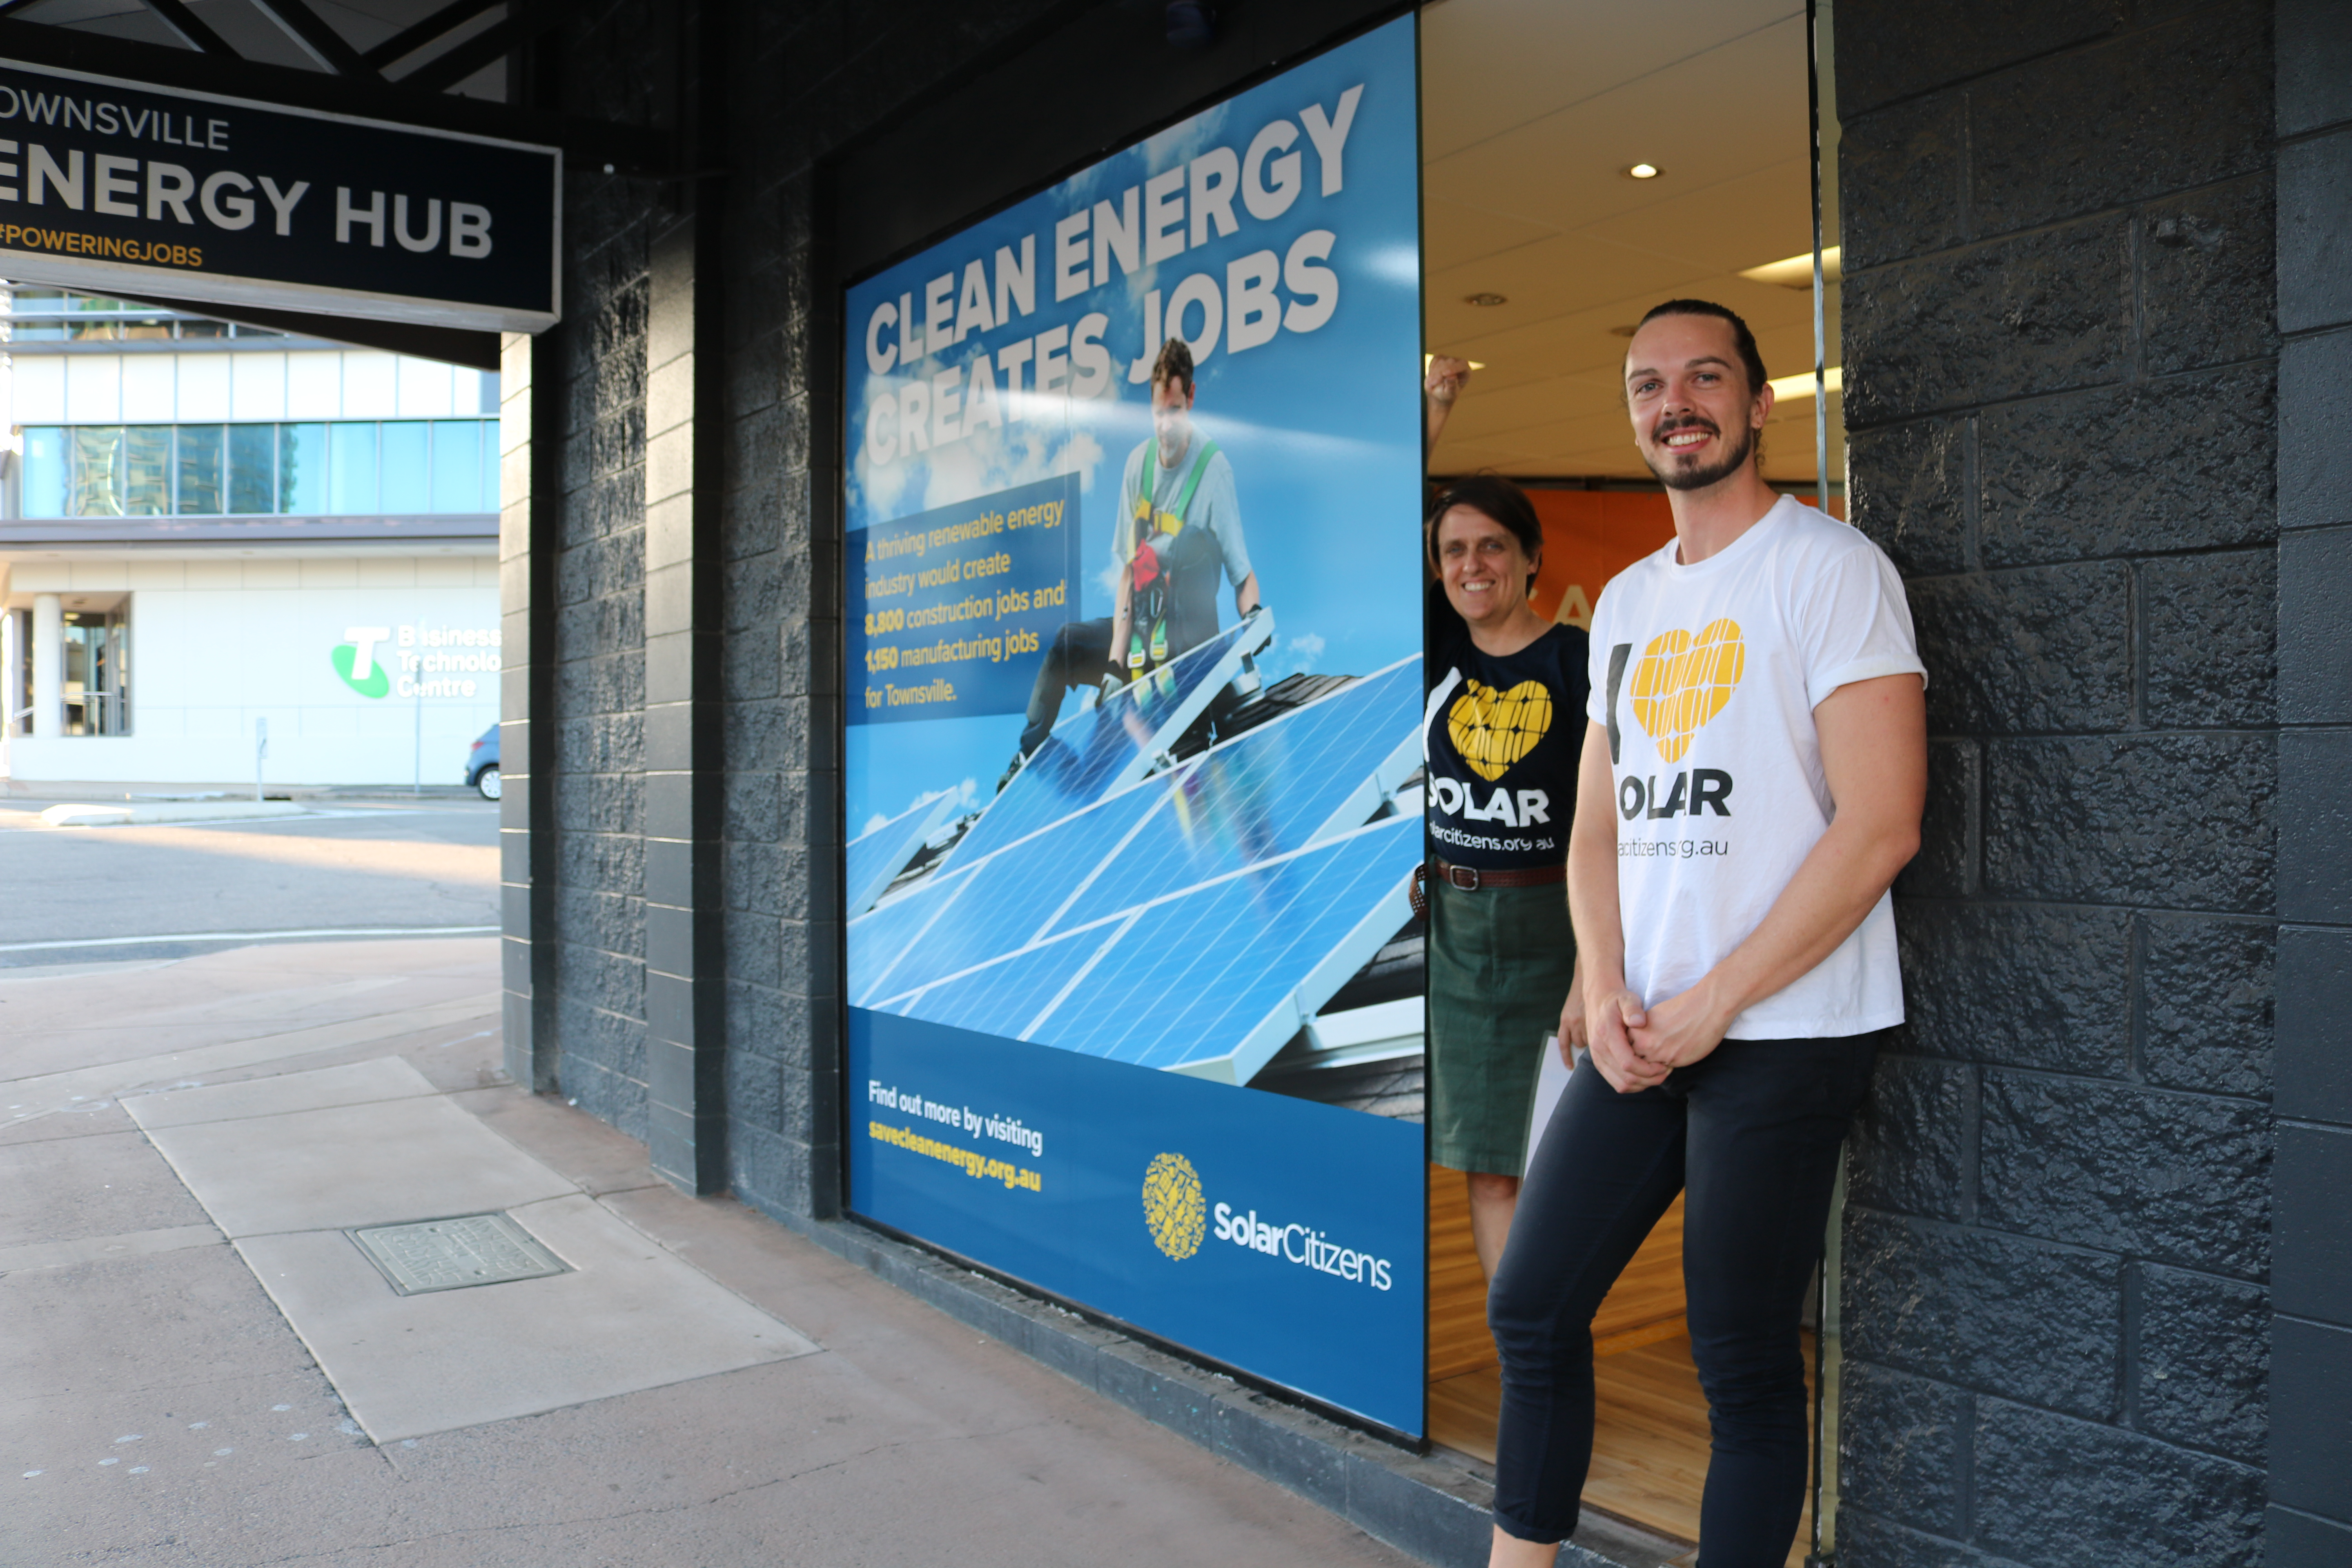 Ellen and Tyler at the Clean Energy Hub